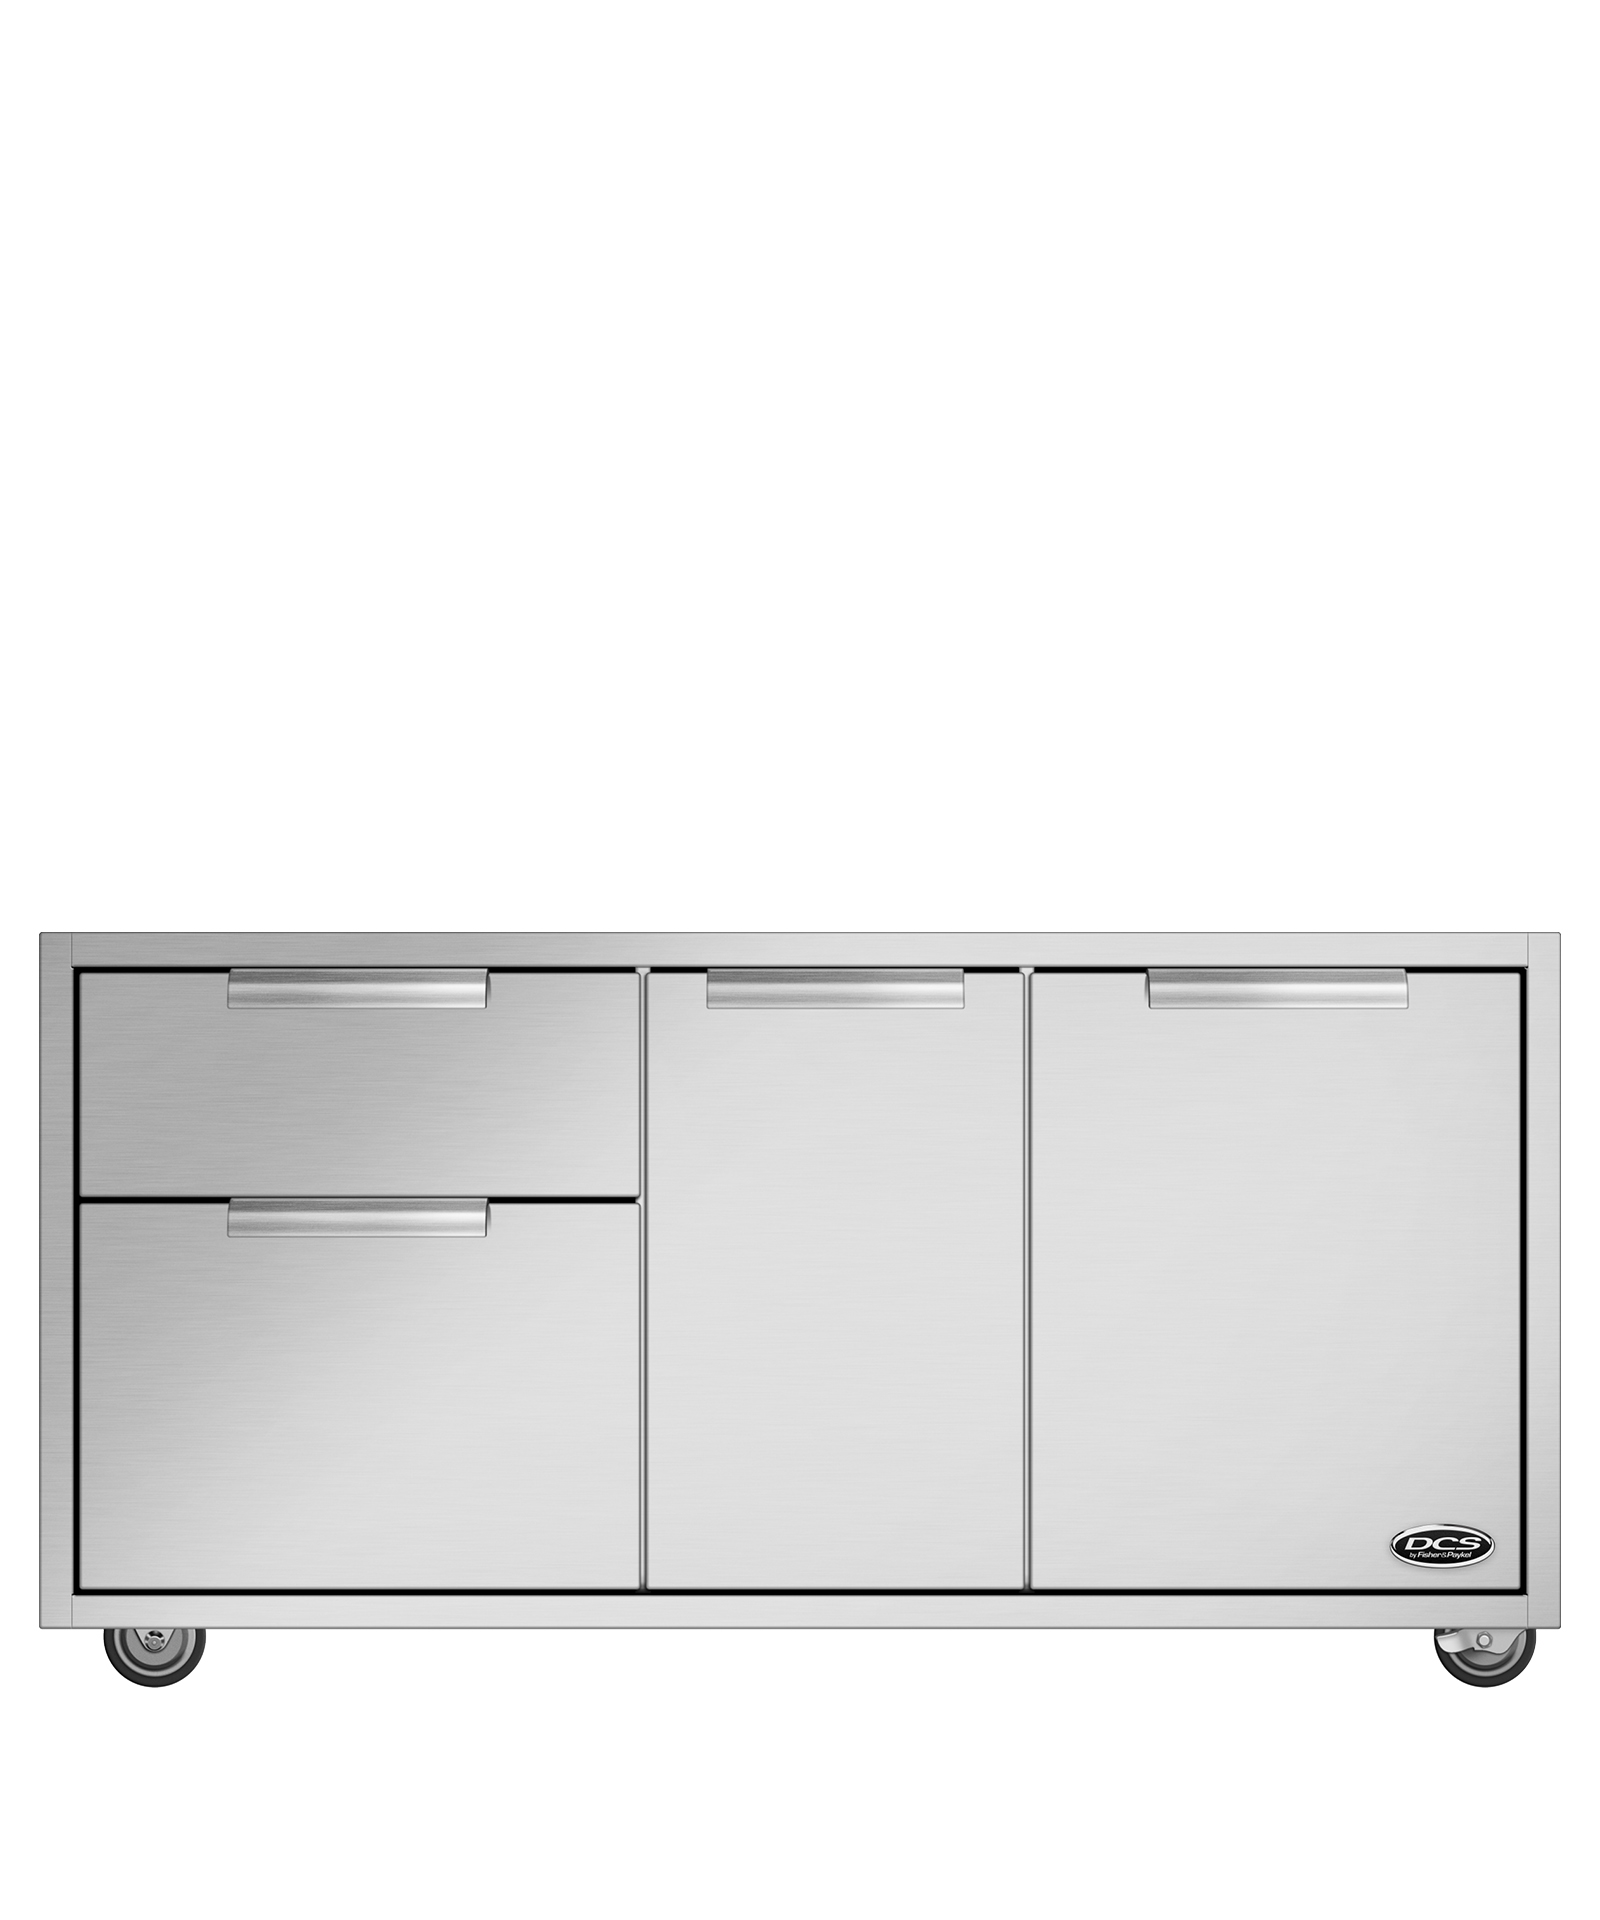 "DCS 48"" Cad Grill Cart, Series 7"